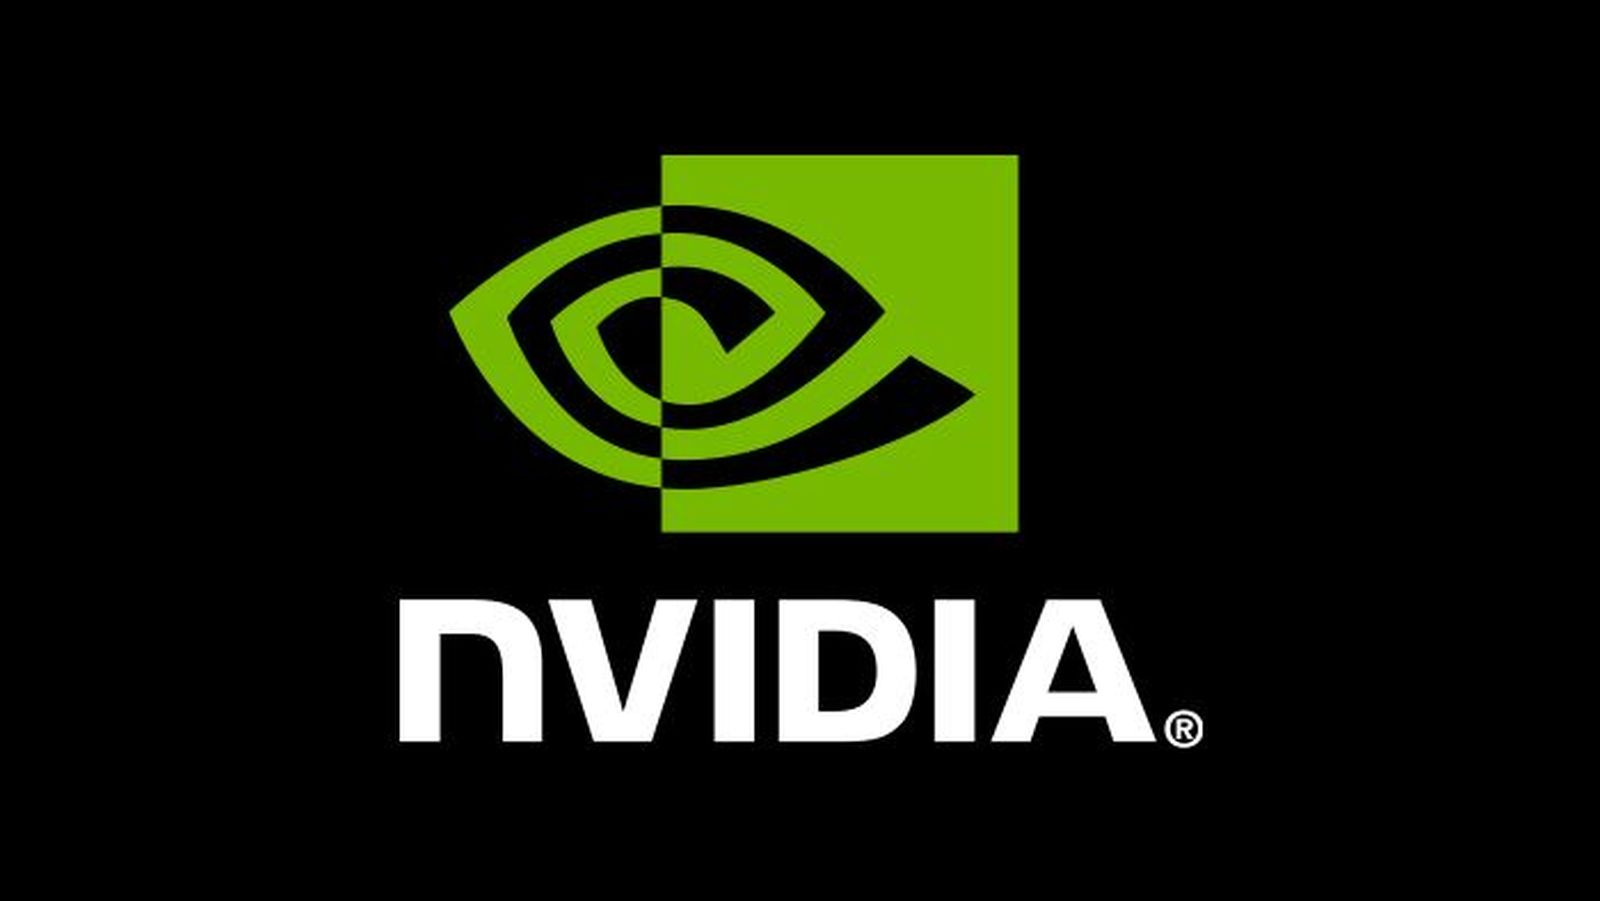 Nvidia reports record earnings, claims it's 'hard to determine' impact of crypto miners